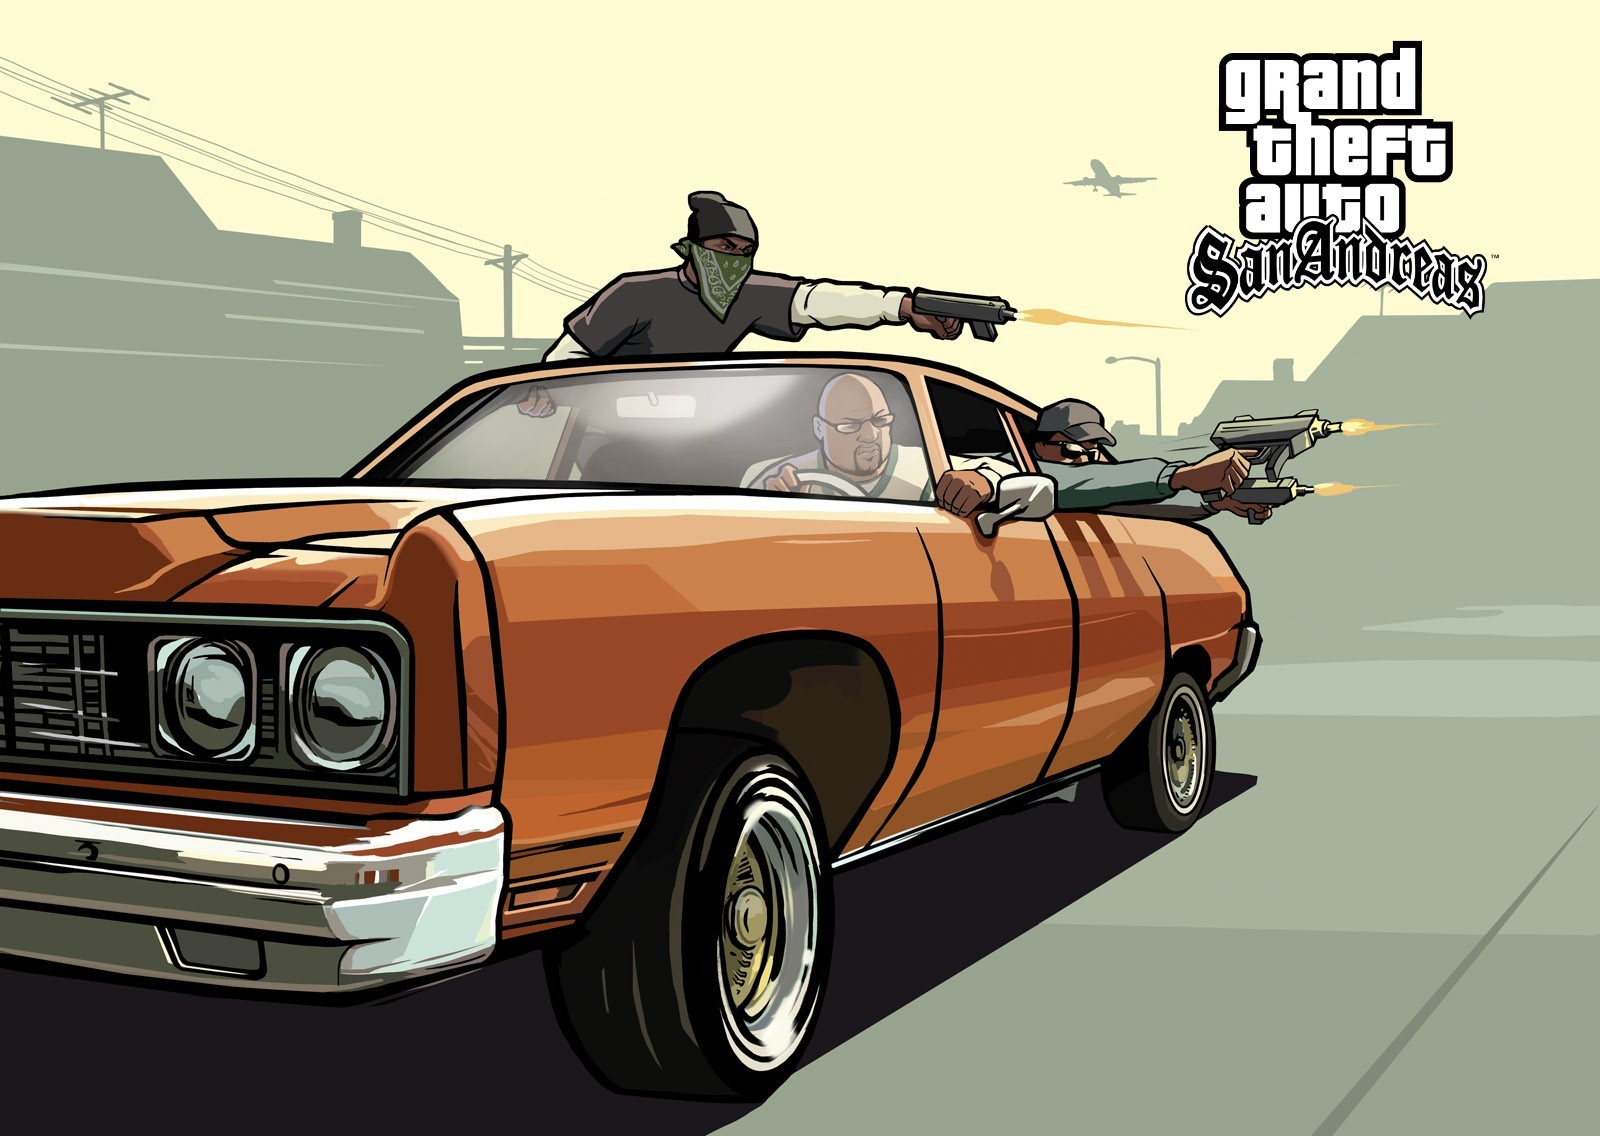 Cheat GTA San Andreas PS 2 | OZAN HACKER